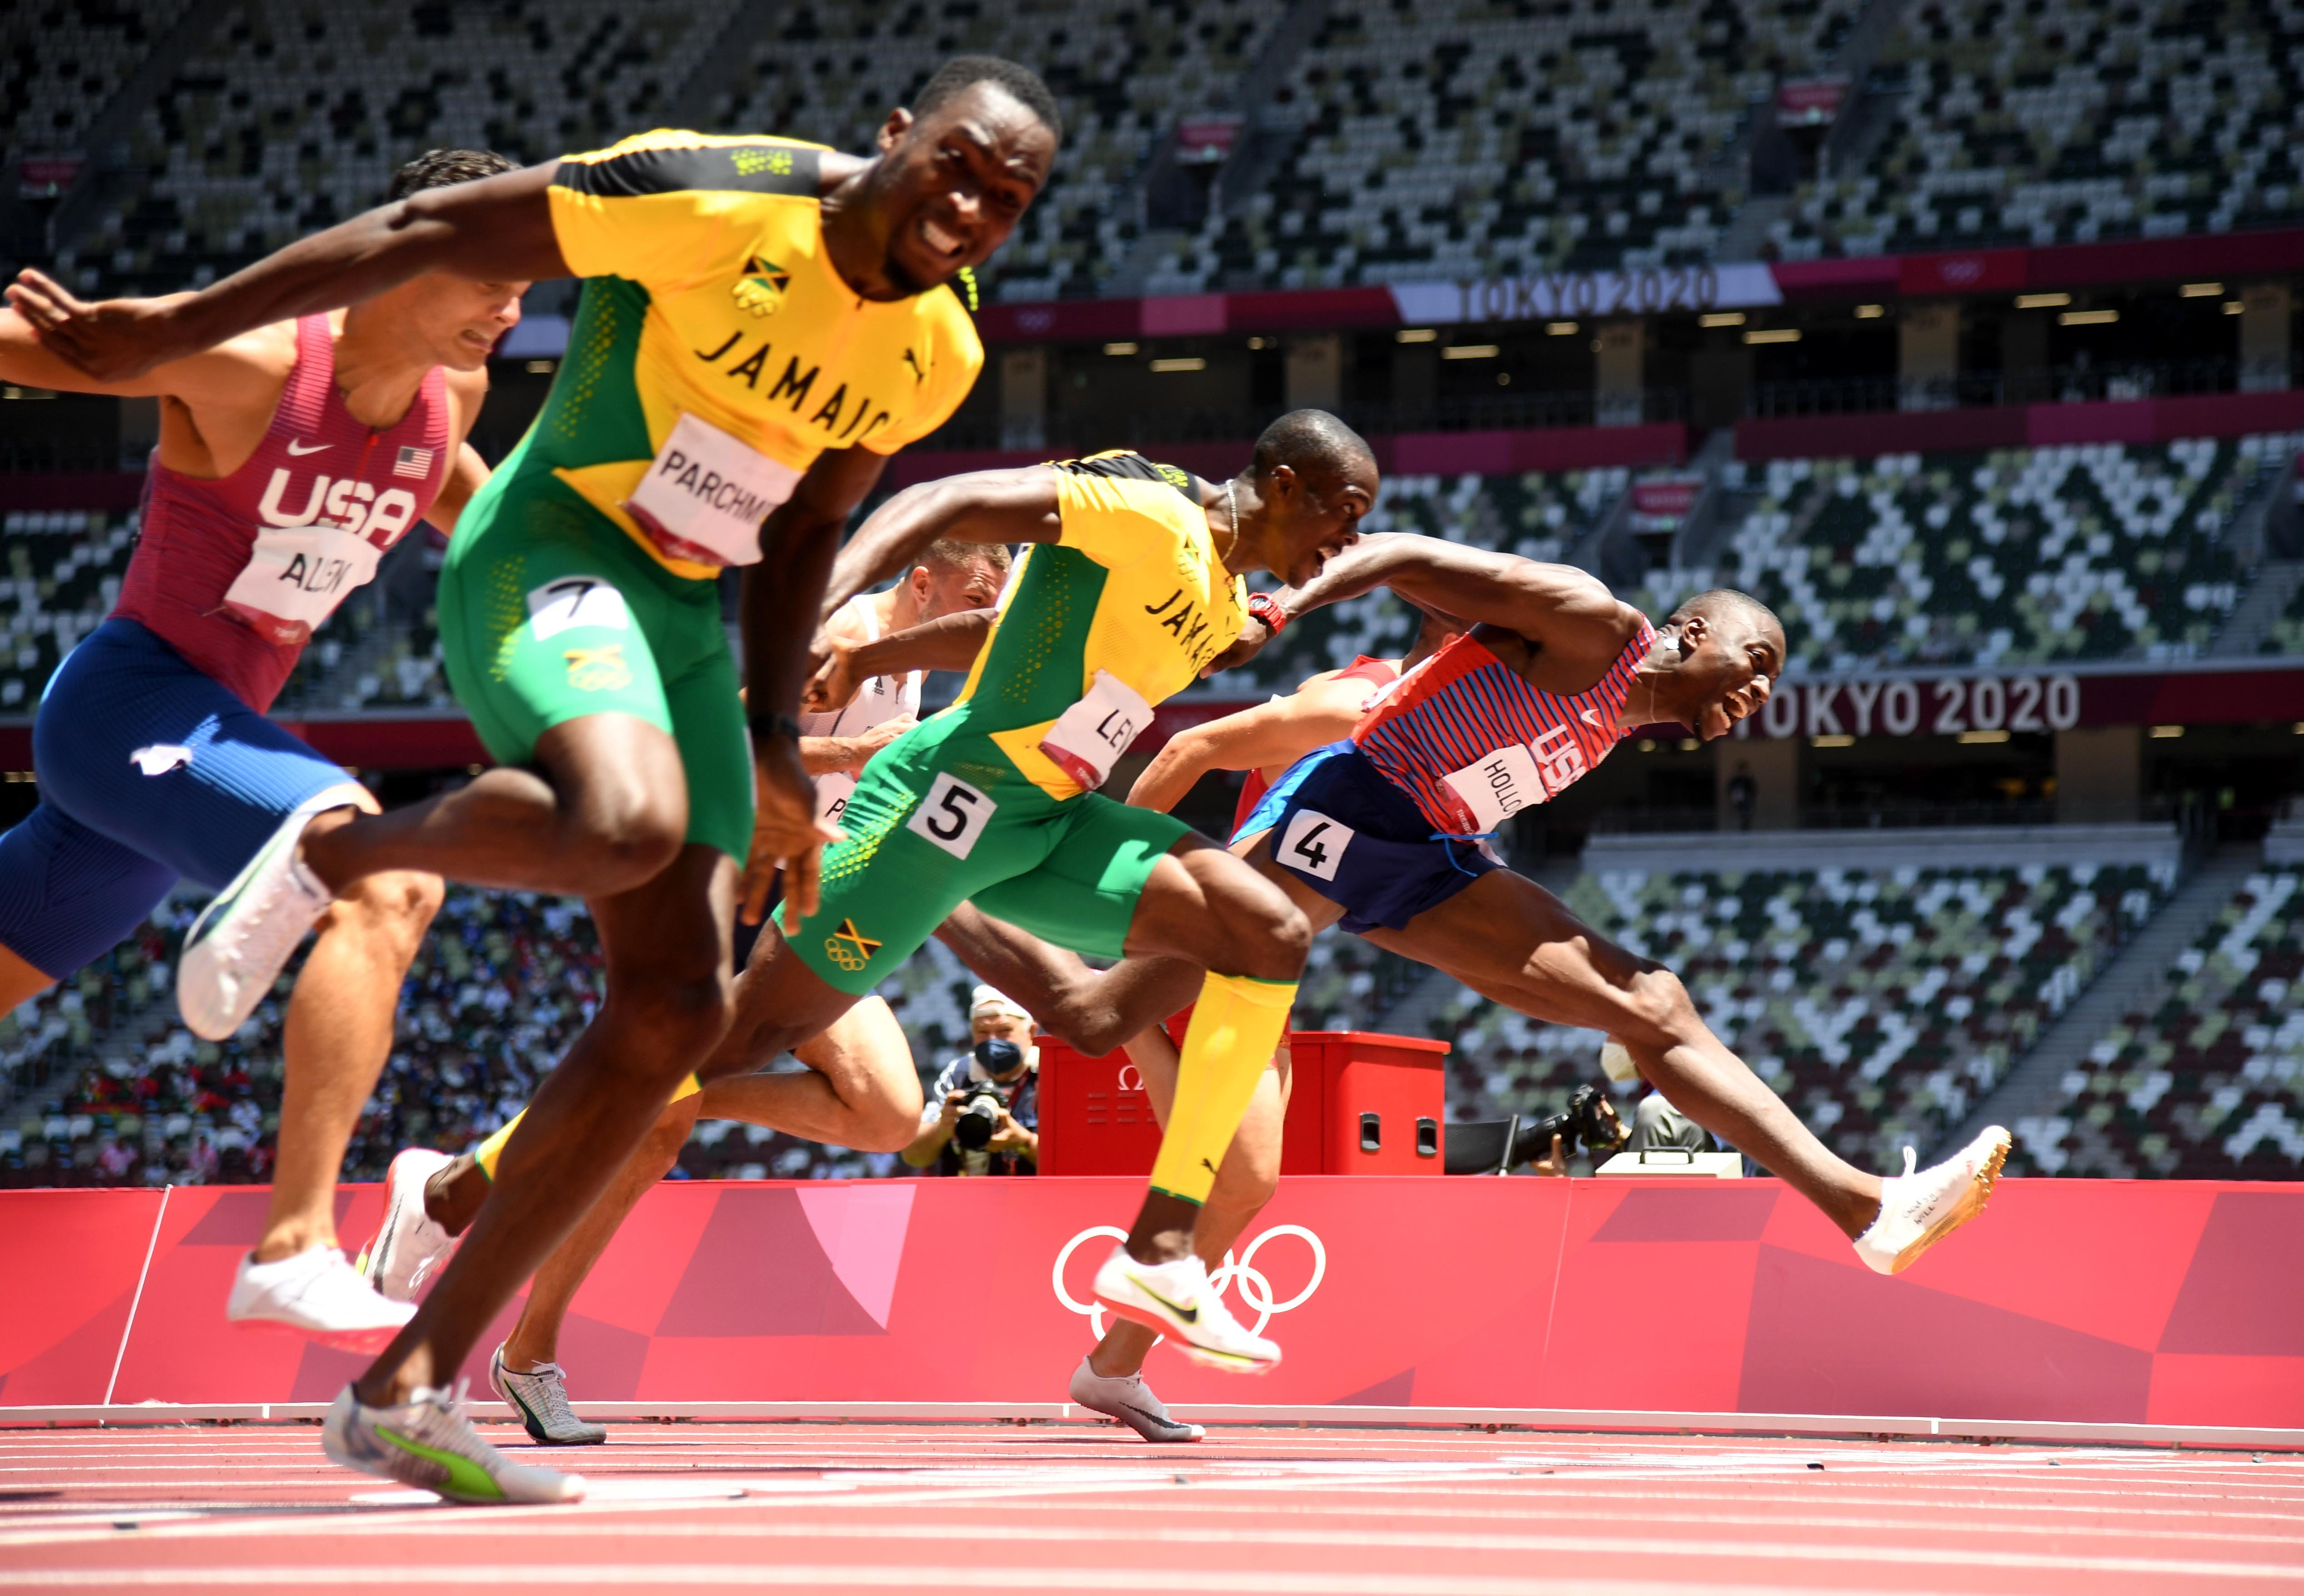 Tokyo Olympics live updates: Grant Holloway takes silver in 110m hurdles, US 4x100m relay team misses final